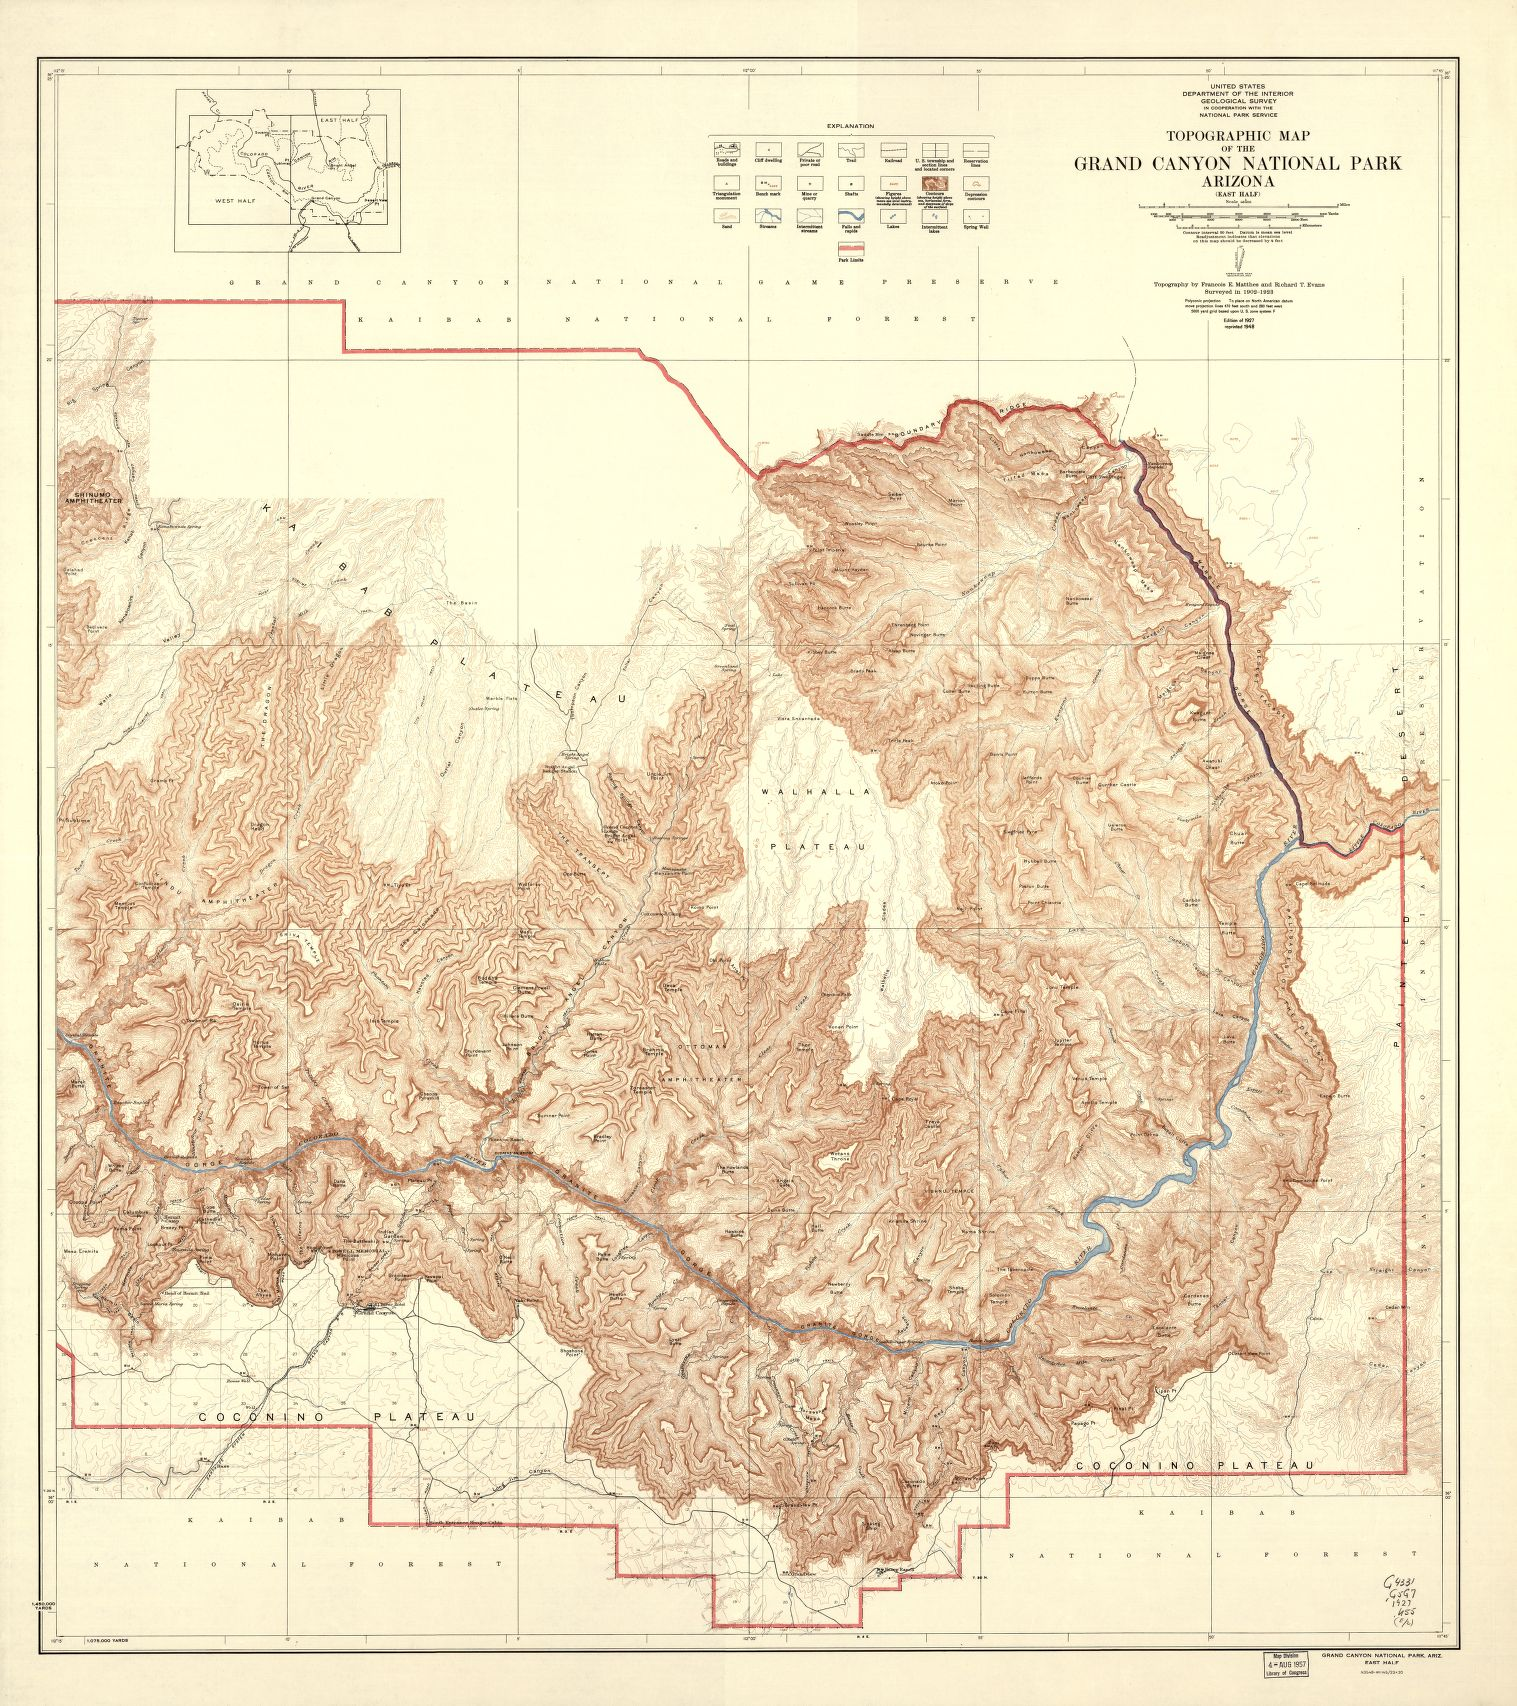 "Topographic Map Grand Canyon National Park Arizona (East Half) </br><a href=""http://www.azarchivesonline.org/xtf/view?docId=ead/nau/NAU_national_park_maps.xml"" target=""_blank"">National Parks Map Collection, NAU.MAP.101.1</a>"